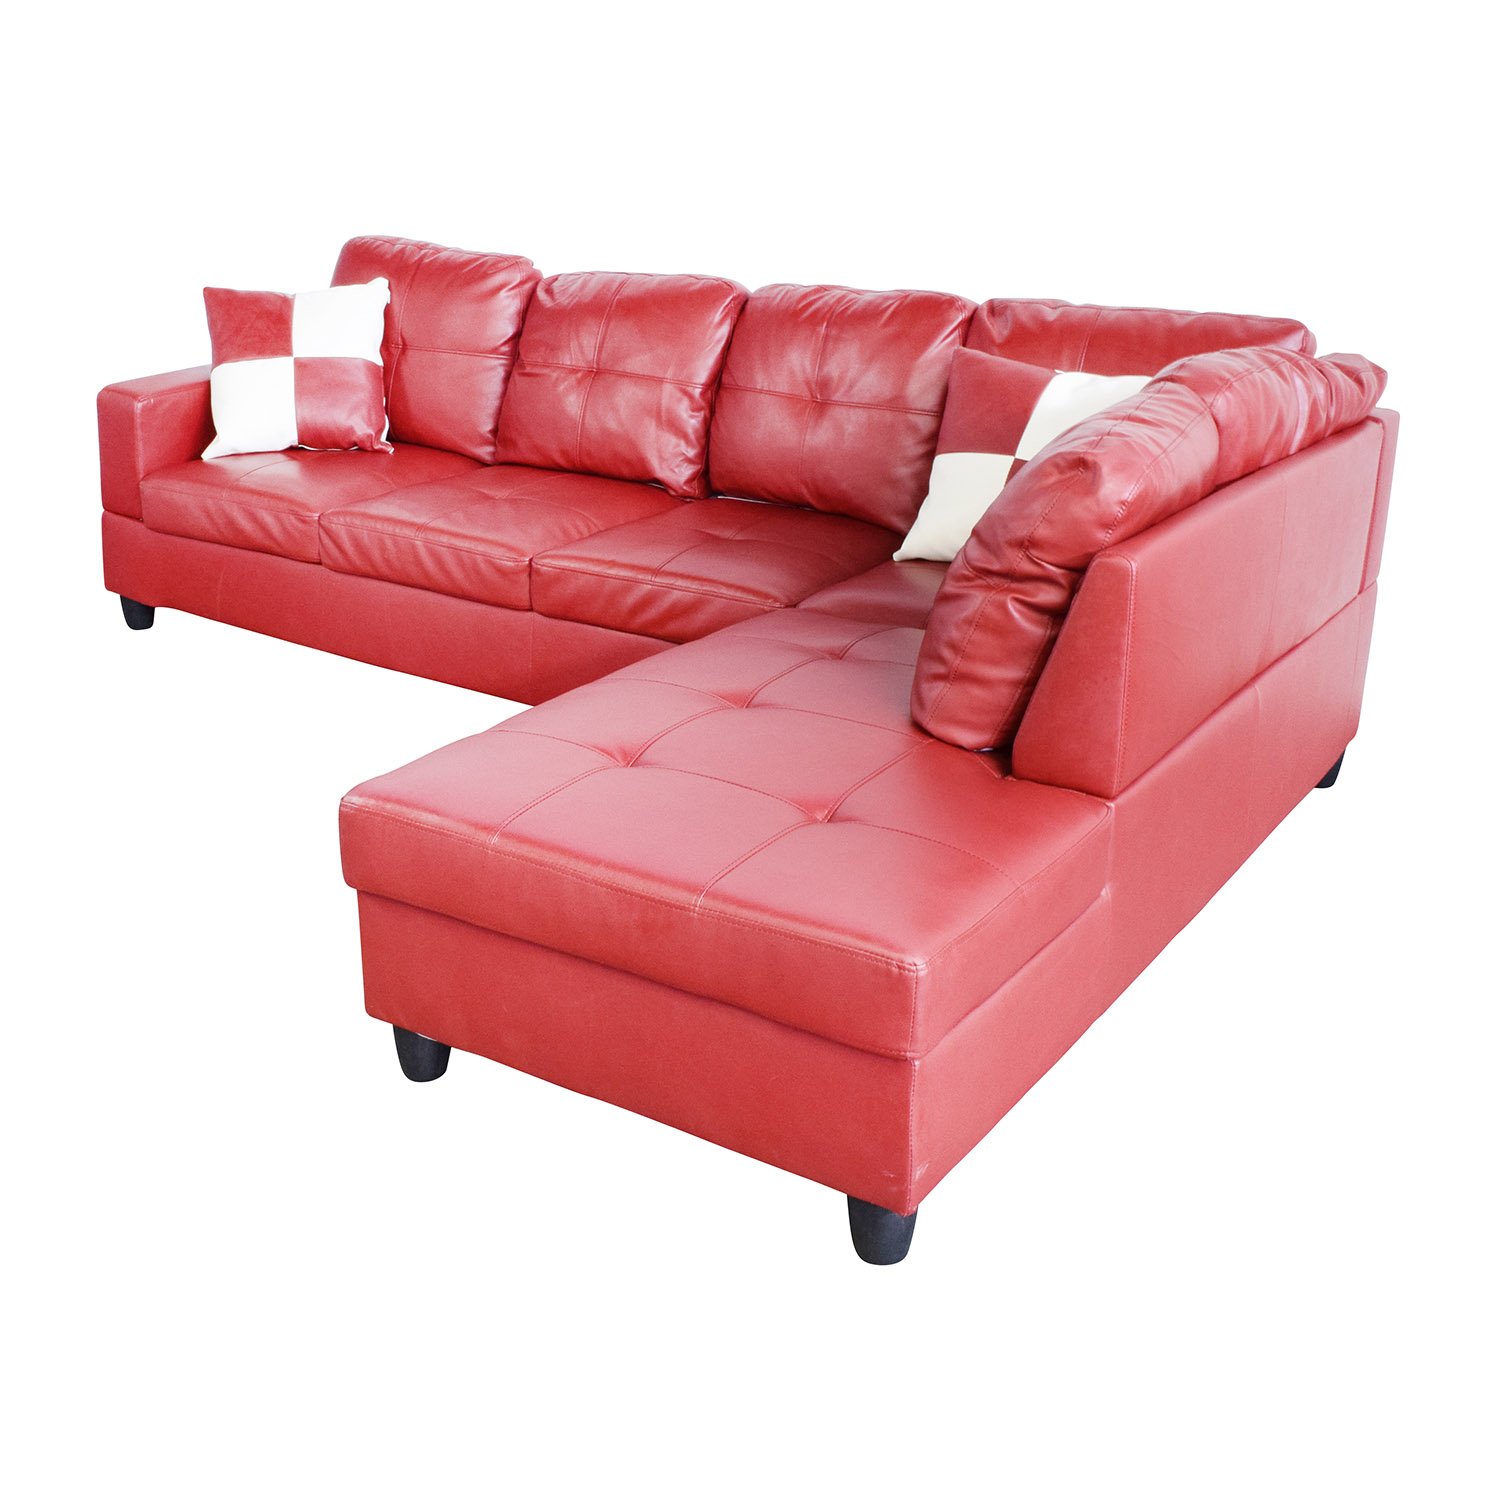 76% OFF Beverly Furniture Beverly Furniture Red Faux Leather